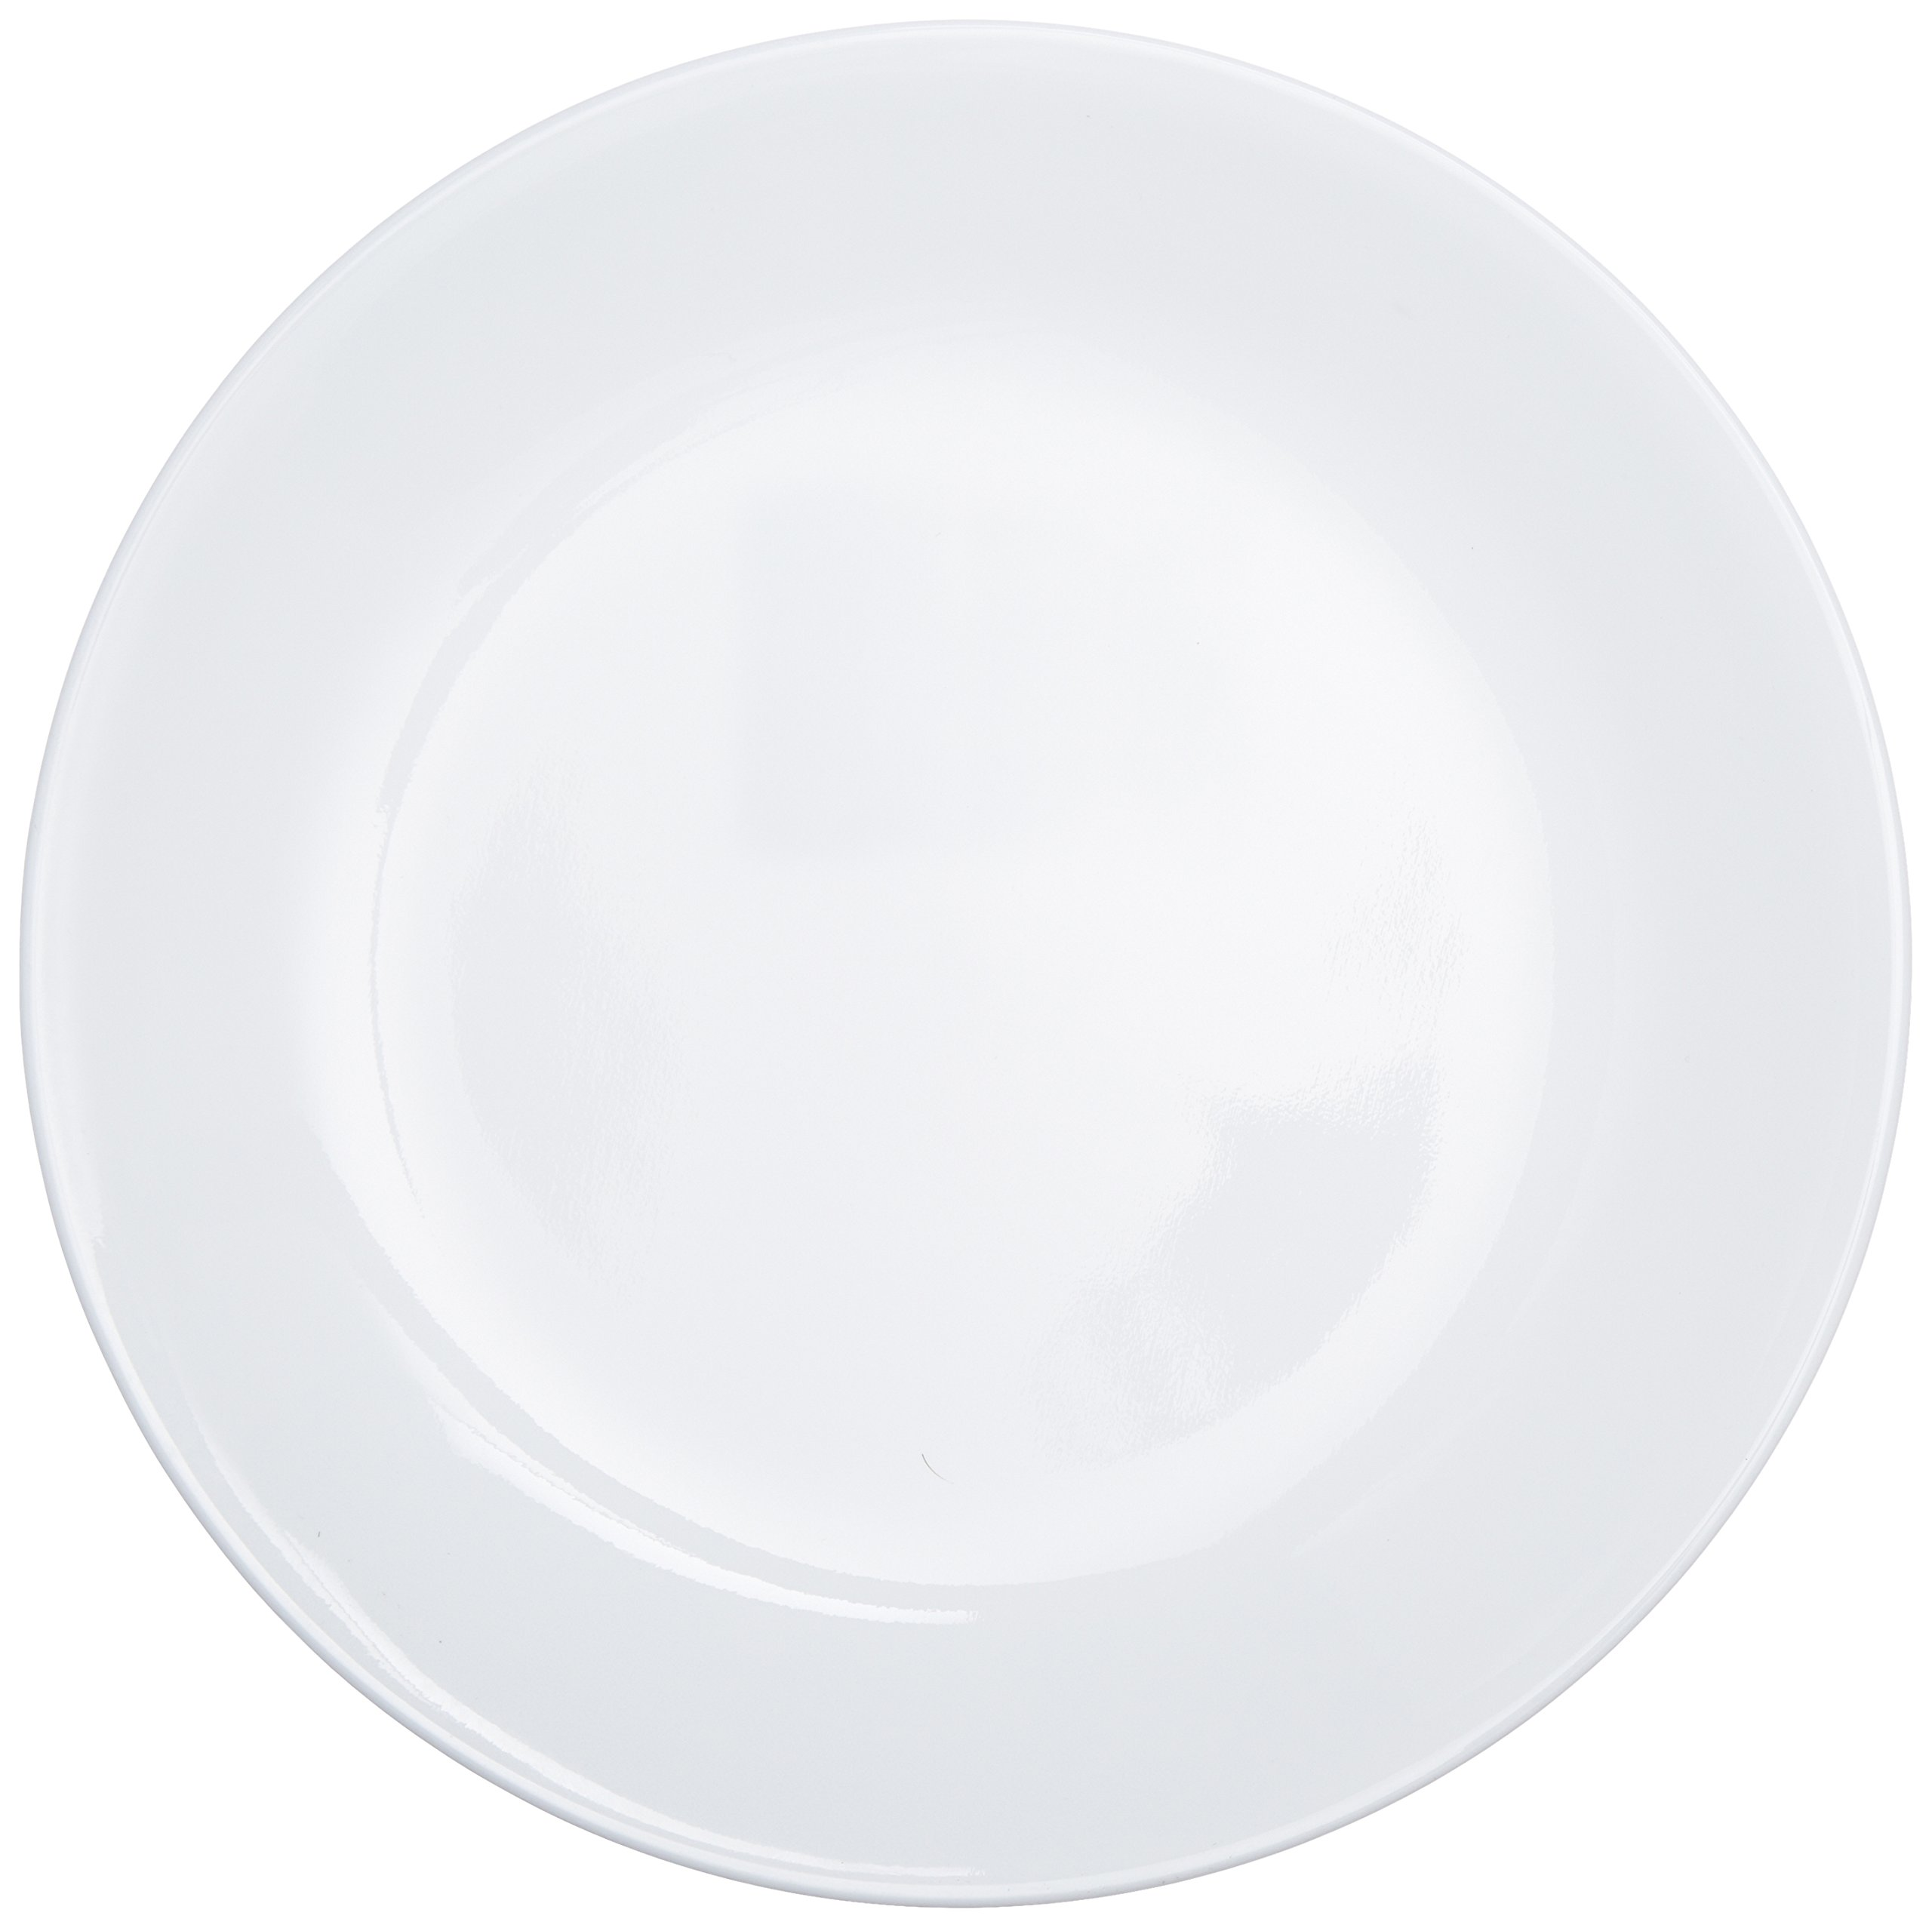 ordinary Corelle Luncheon Plates Open Stock Part - 2: Corelle Livingware Luncheon Plate, Winter Frost White, Size: 8-1-2-Inch,  Set of 6 Plates